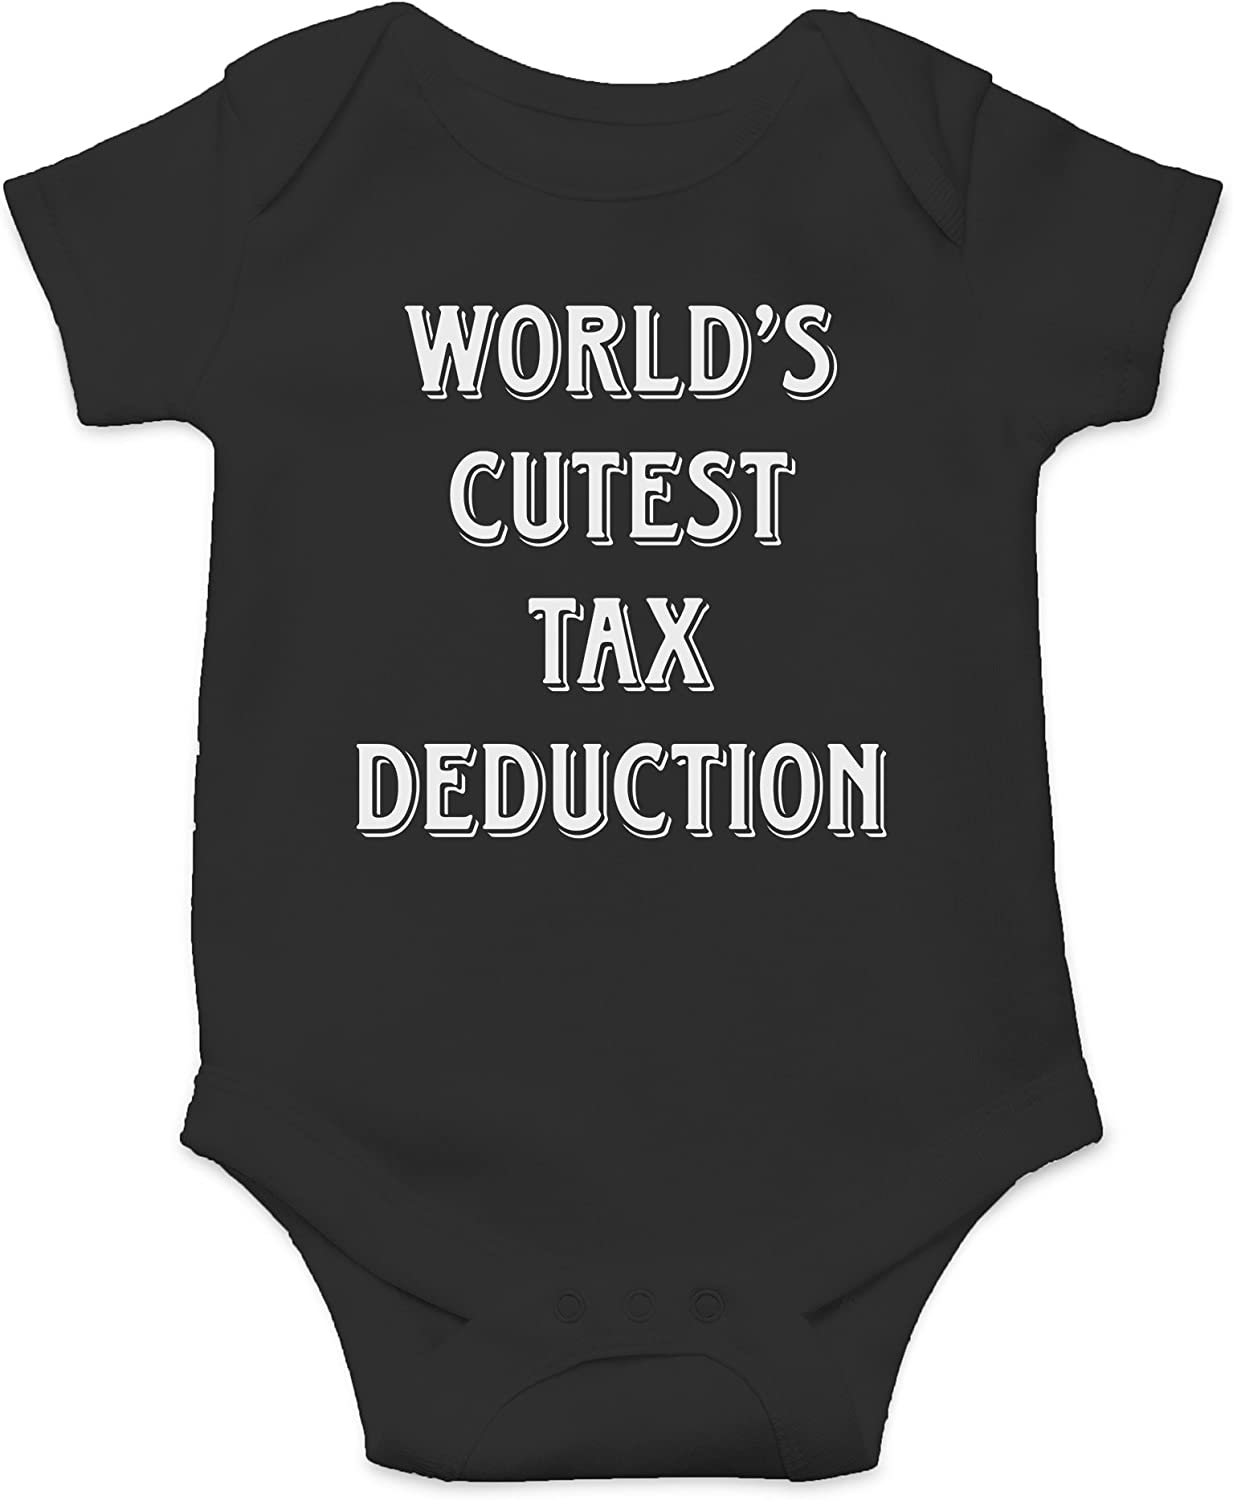 AW Fashions World's Cutest Tax Deduction Cute Novelty Funny Infant One-Piece Baby Bodysuit